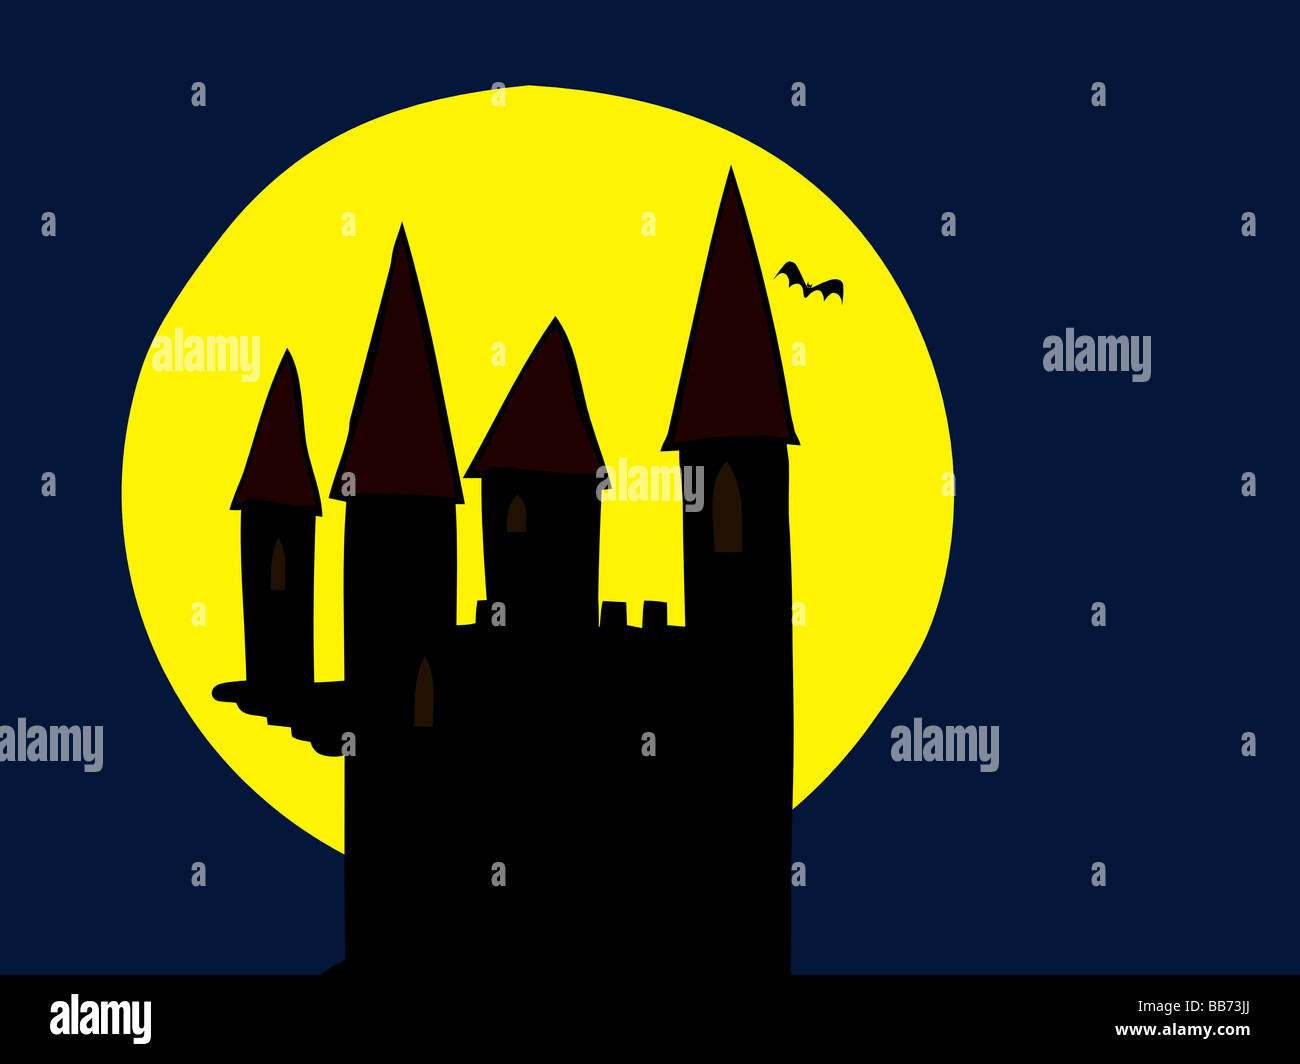 Illustration of the old haunted castle in the moonlight - Stock Image